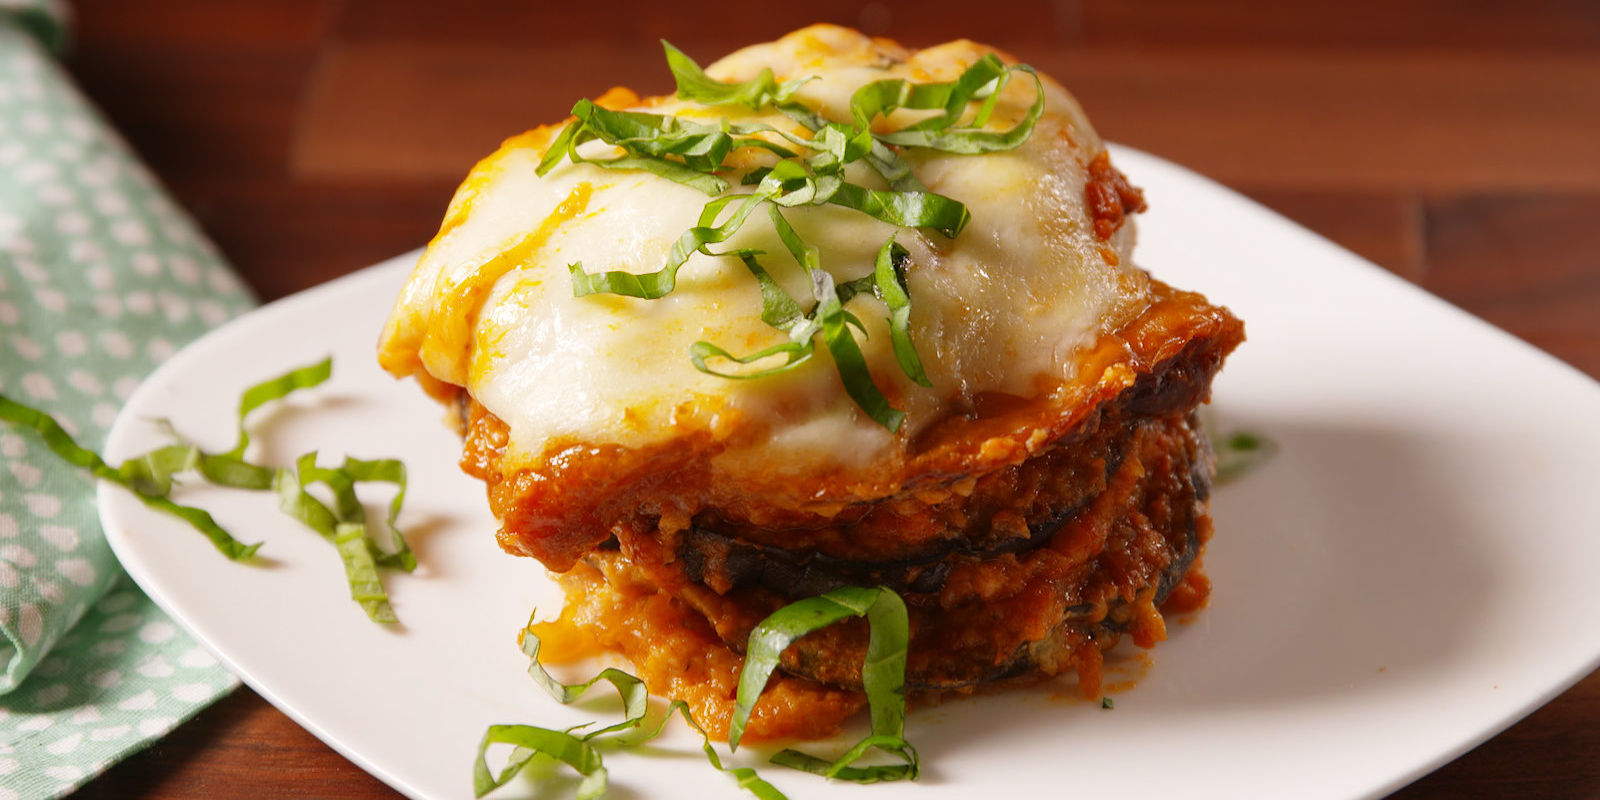 Easy Slow Cooker Eggplant Parmesan Recipe - How to Make Eggplant ...